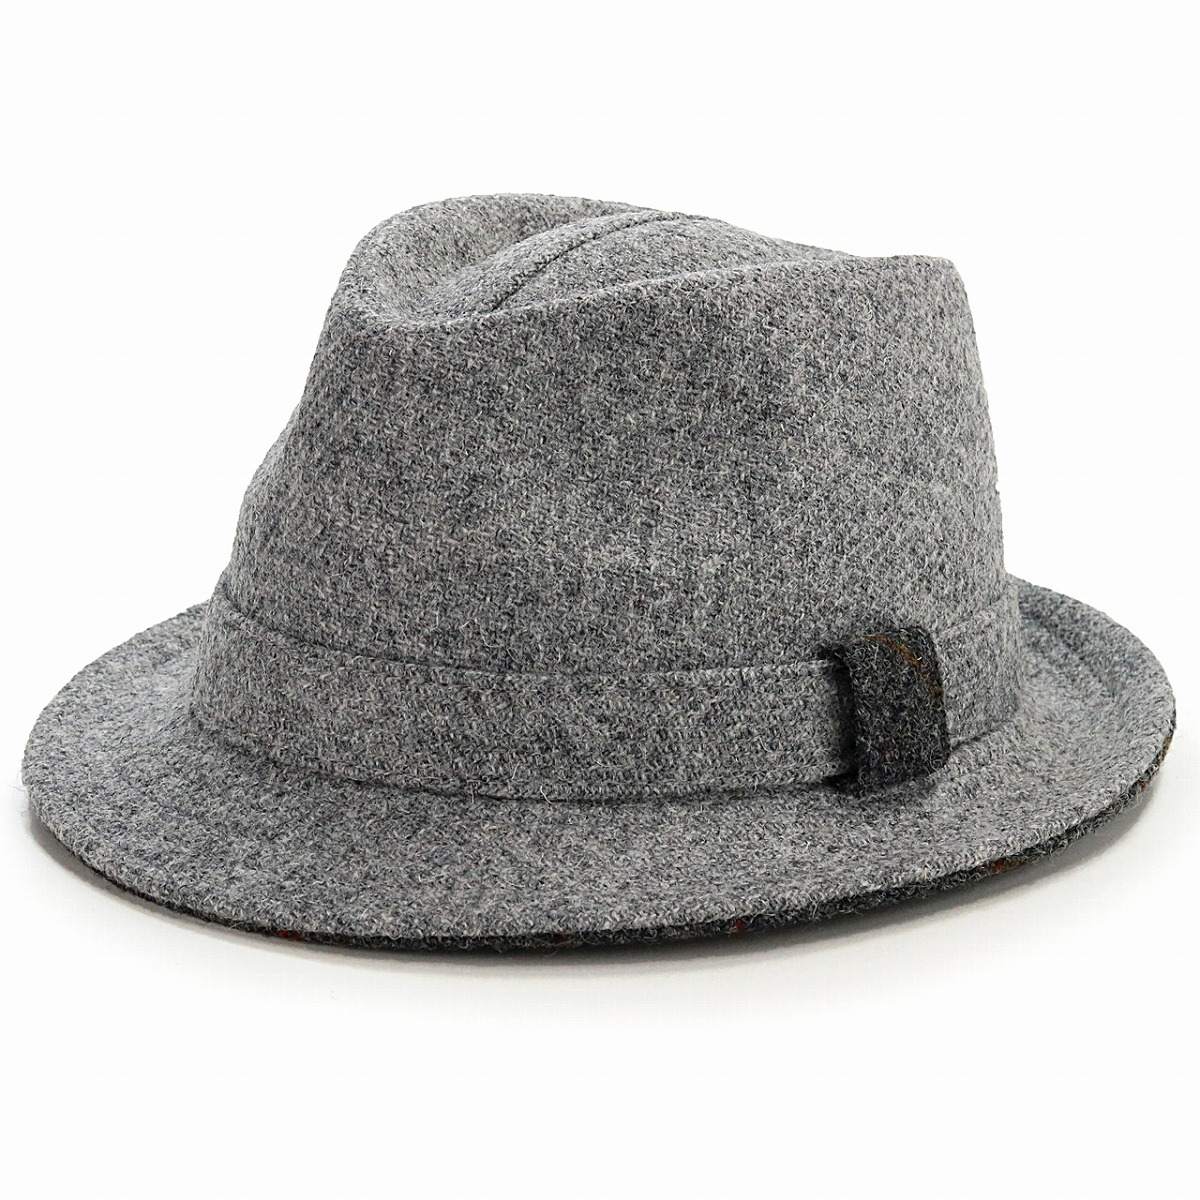 ... Gift gray  fedora  made in size 60cm 62cm カシュケットウール soft felt hat ... b51a2af840e